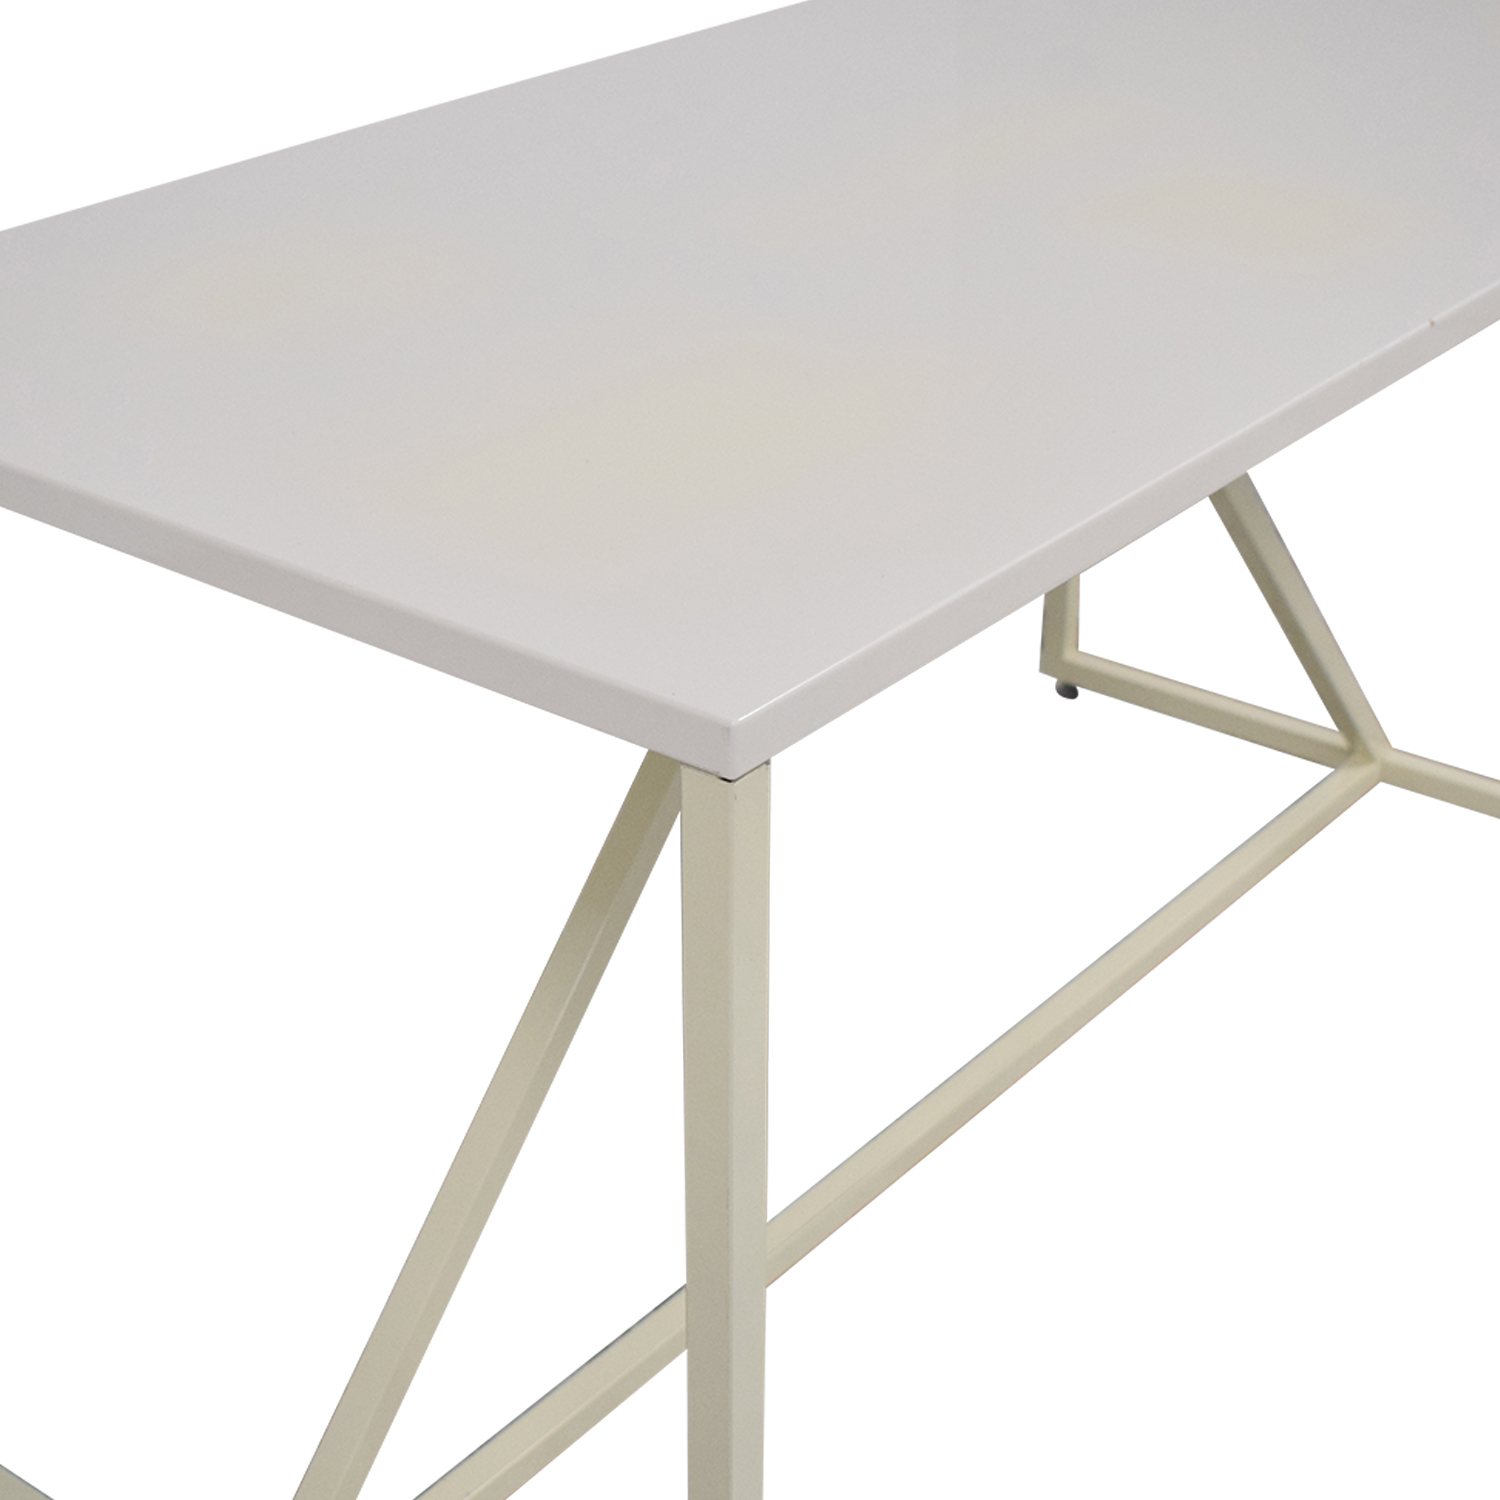 Blu Dot Blu Dot Strut Desk for sale